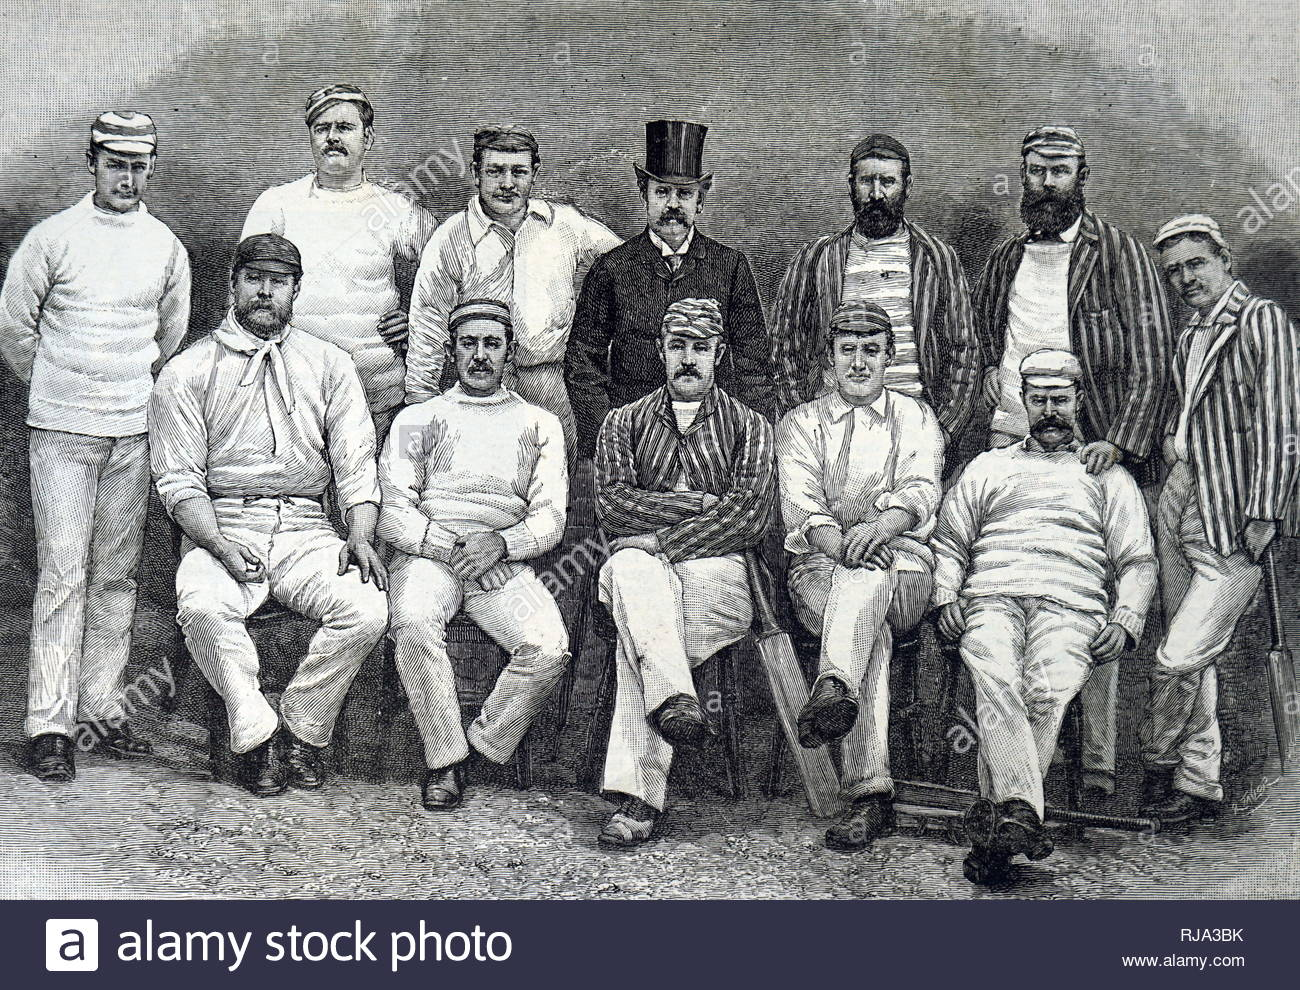 Engraving depicting the Australian touring team of 1888. Seated left to right: G.J. Bonnor, C.T.B. Turner, P.S. MacDonnell (Captain), H. Trott, A.C. Bannerman. Standing, left to right: F.J. Ferris, A.H. Jarvis, J. Worrall, C.W. Beal (manager), J.M.C. Blackham, H.F. Boyle, J. Edwards. Dated 19th century - Stock Image